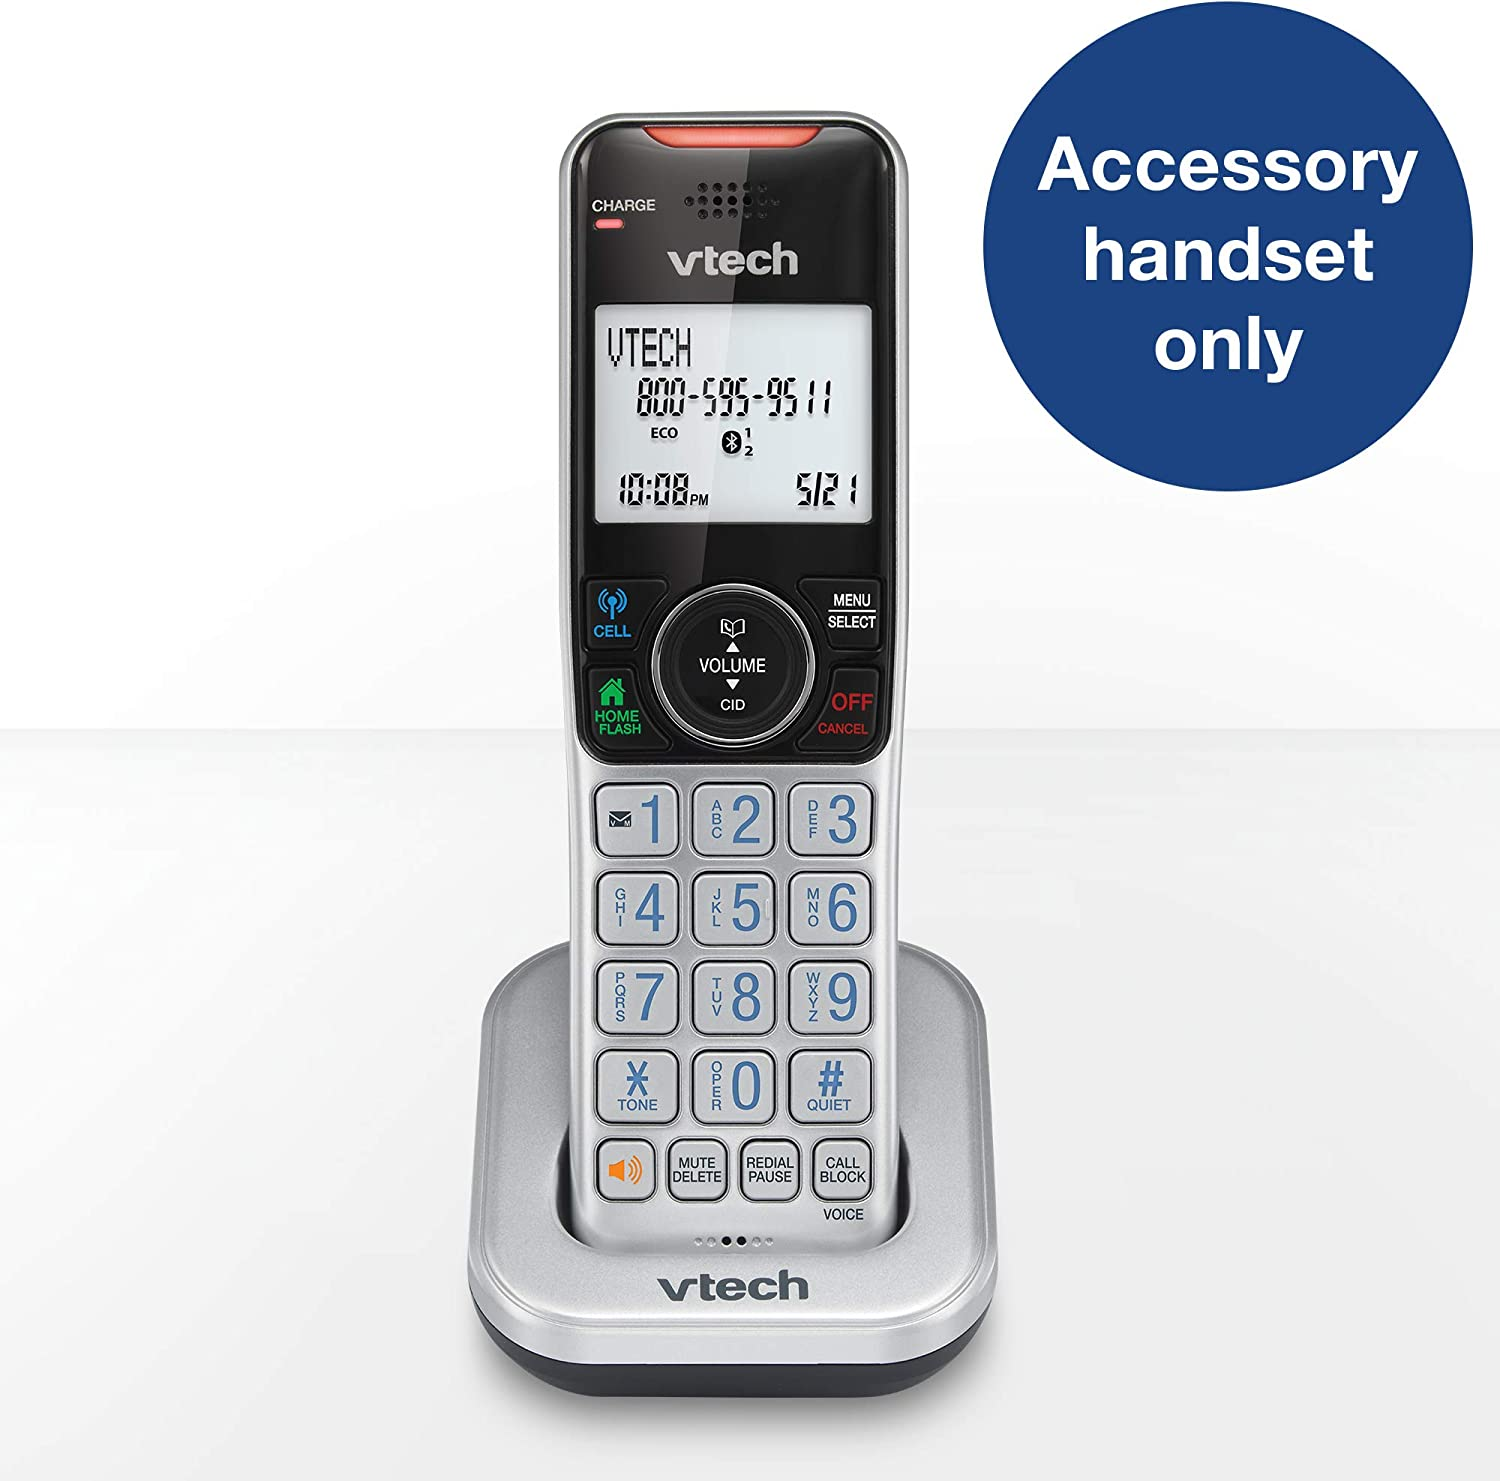 Silver /& Black VTech Accessory Handset with Bluetooth Connect to Cell and Smart Call Blocker VS112-0